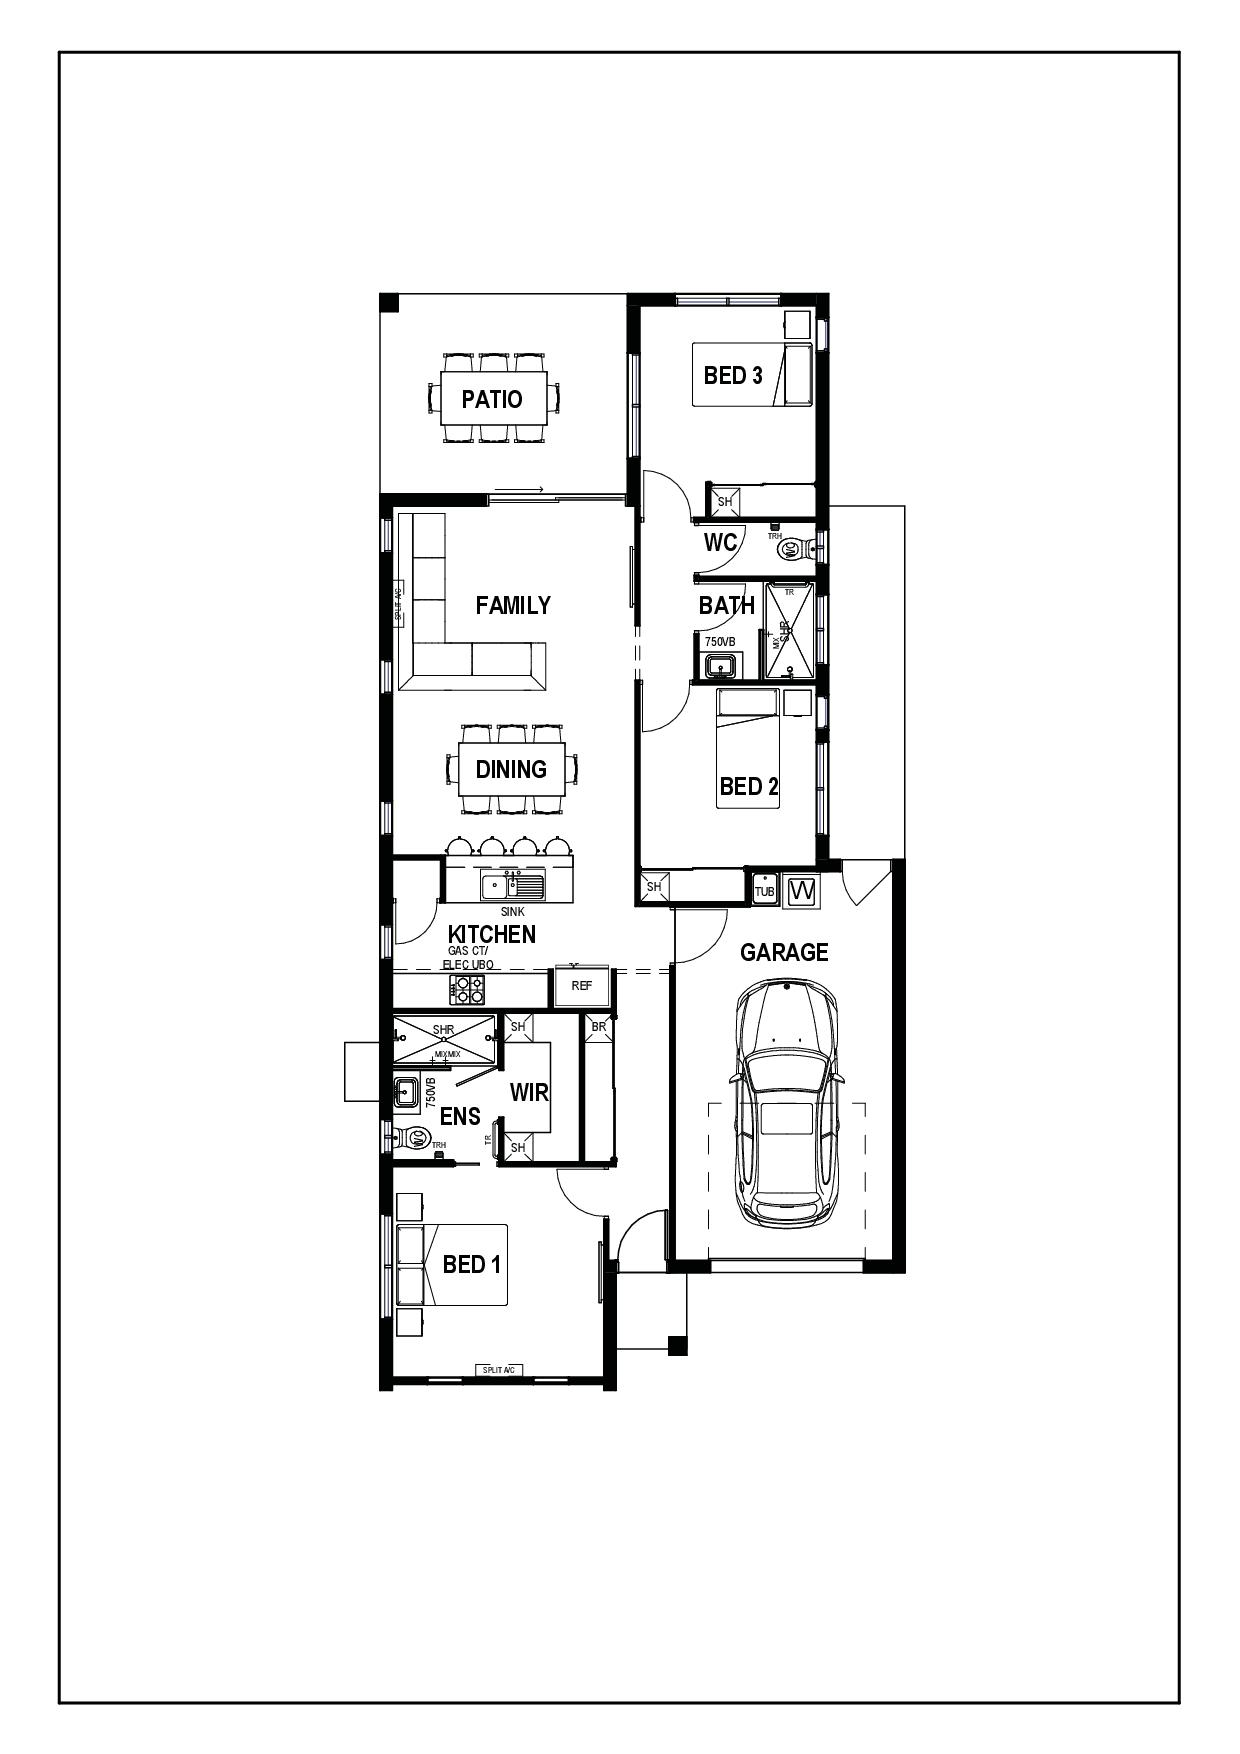 Carramar A -17 - Floor PLan.jpg